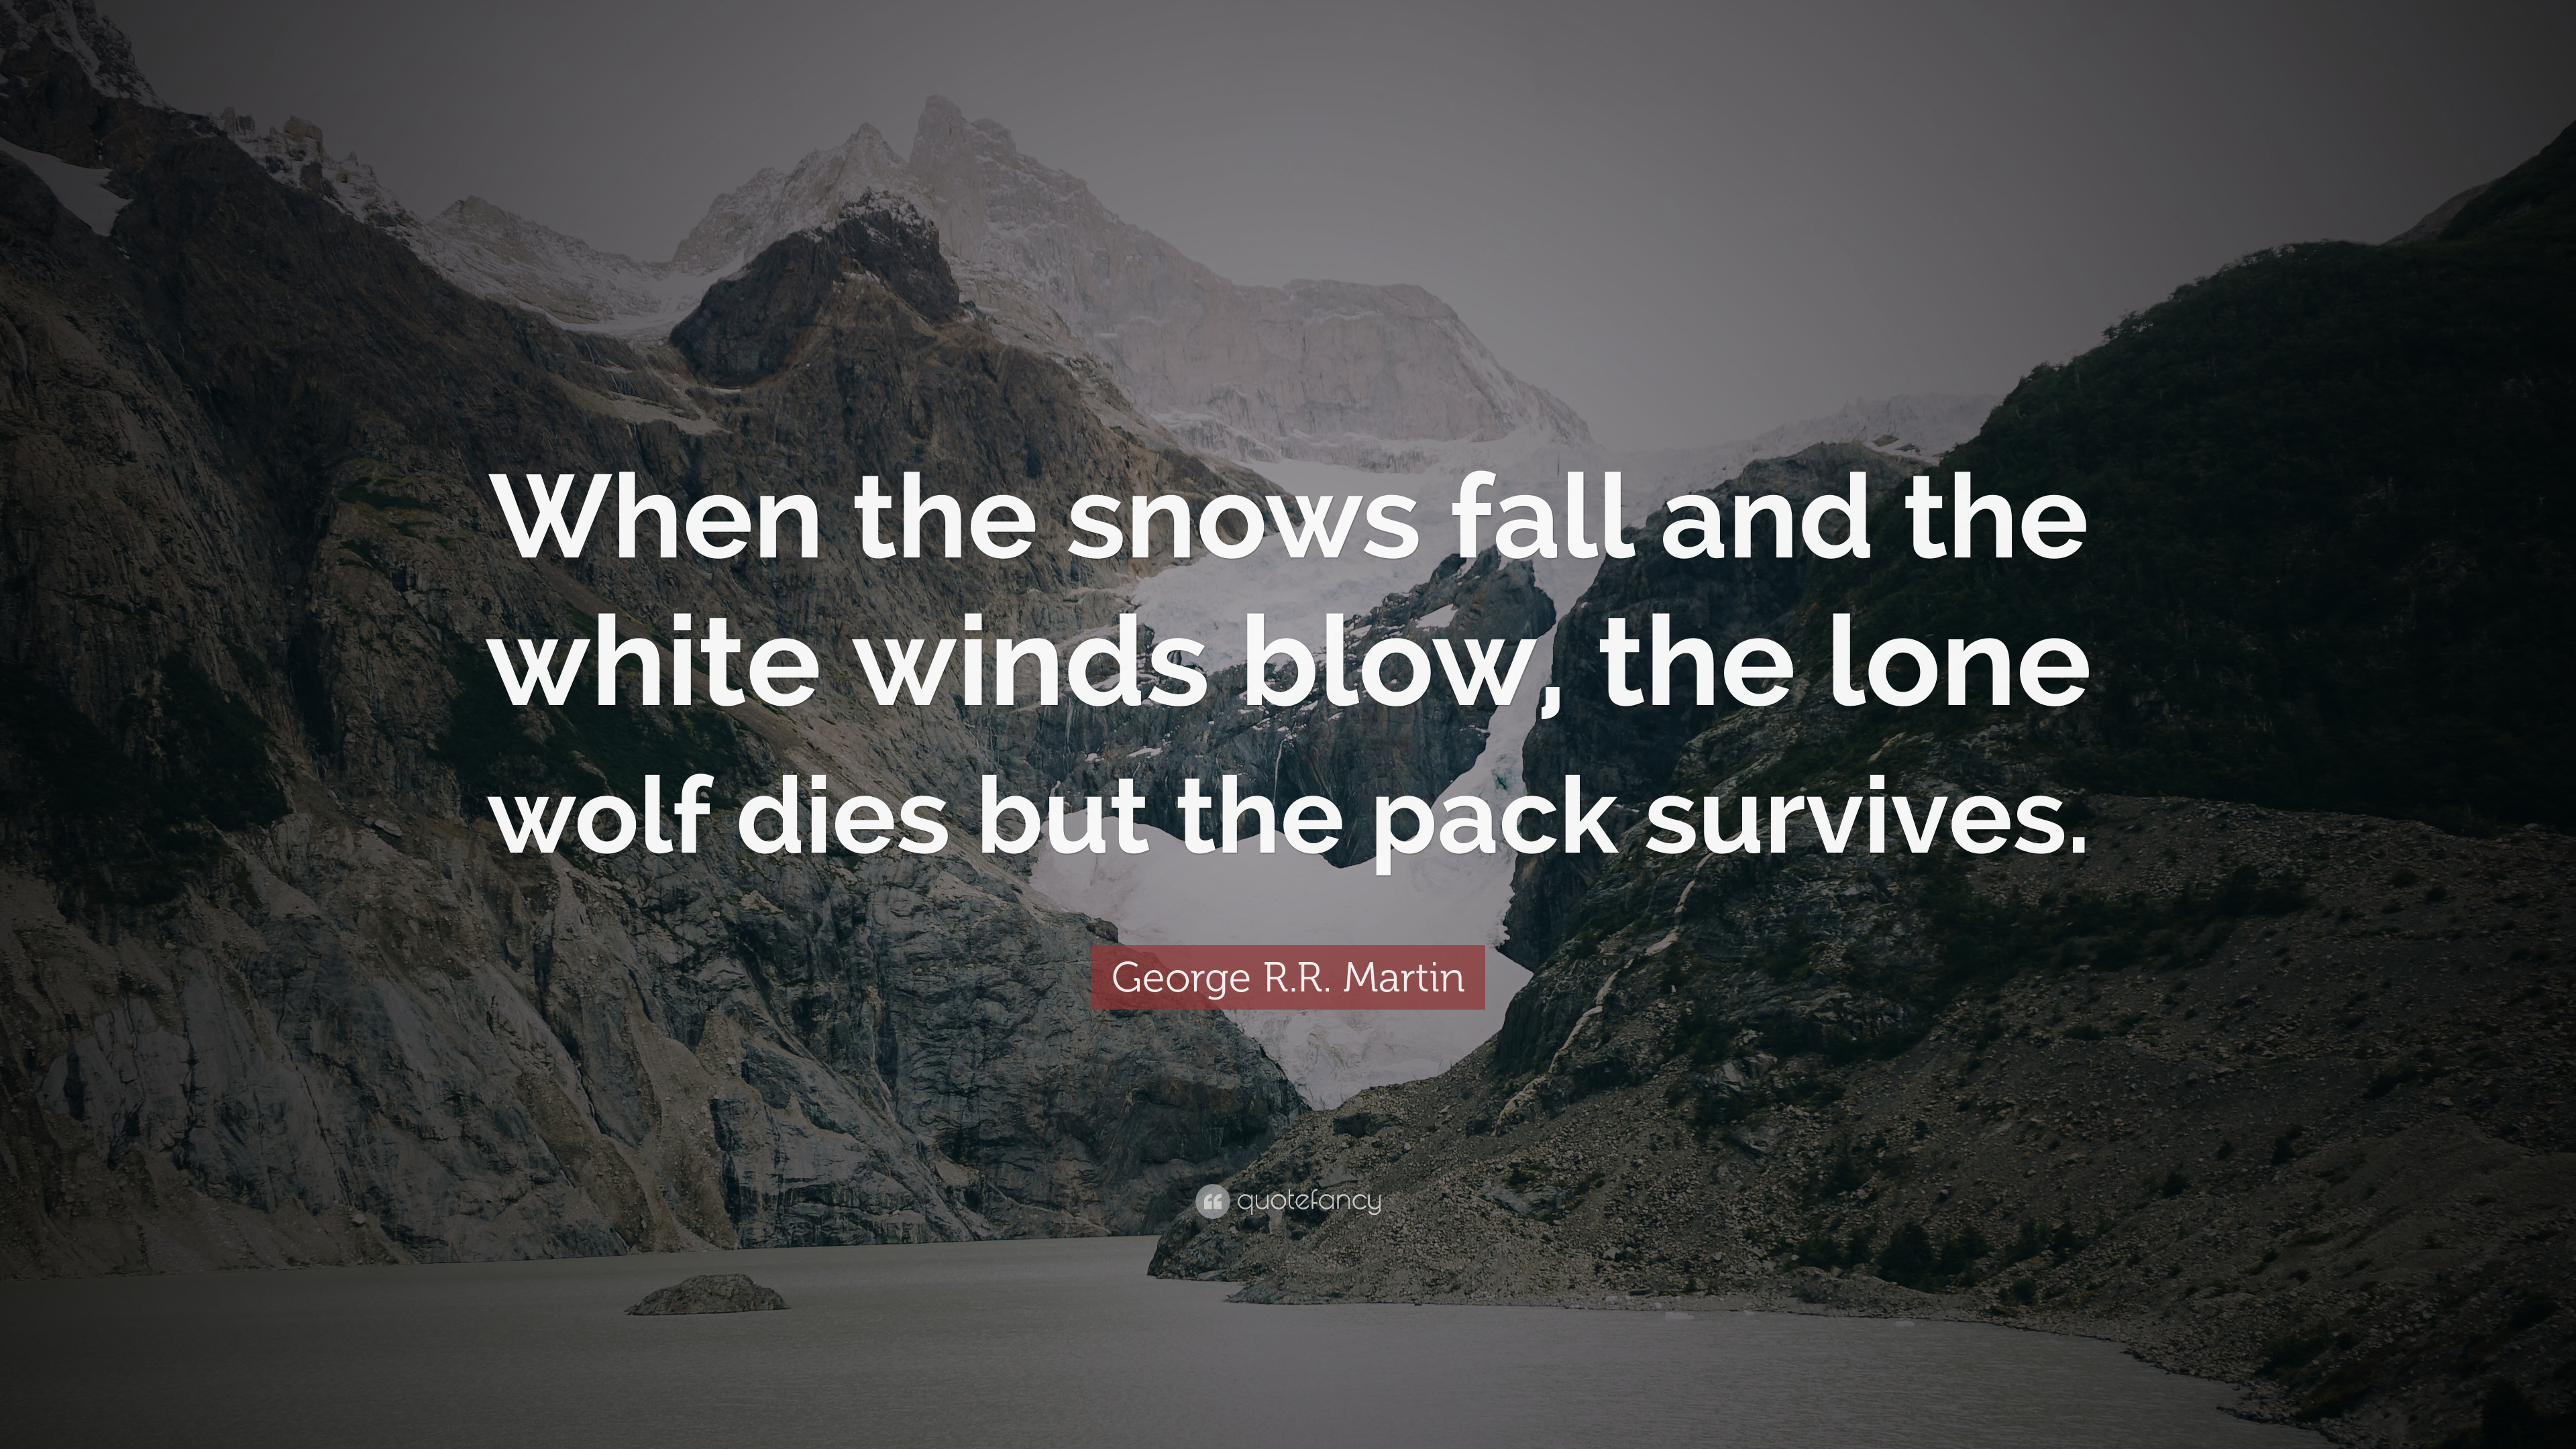 George Rr Martin Quote When The Snows Fall And The White Winds